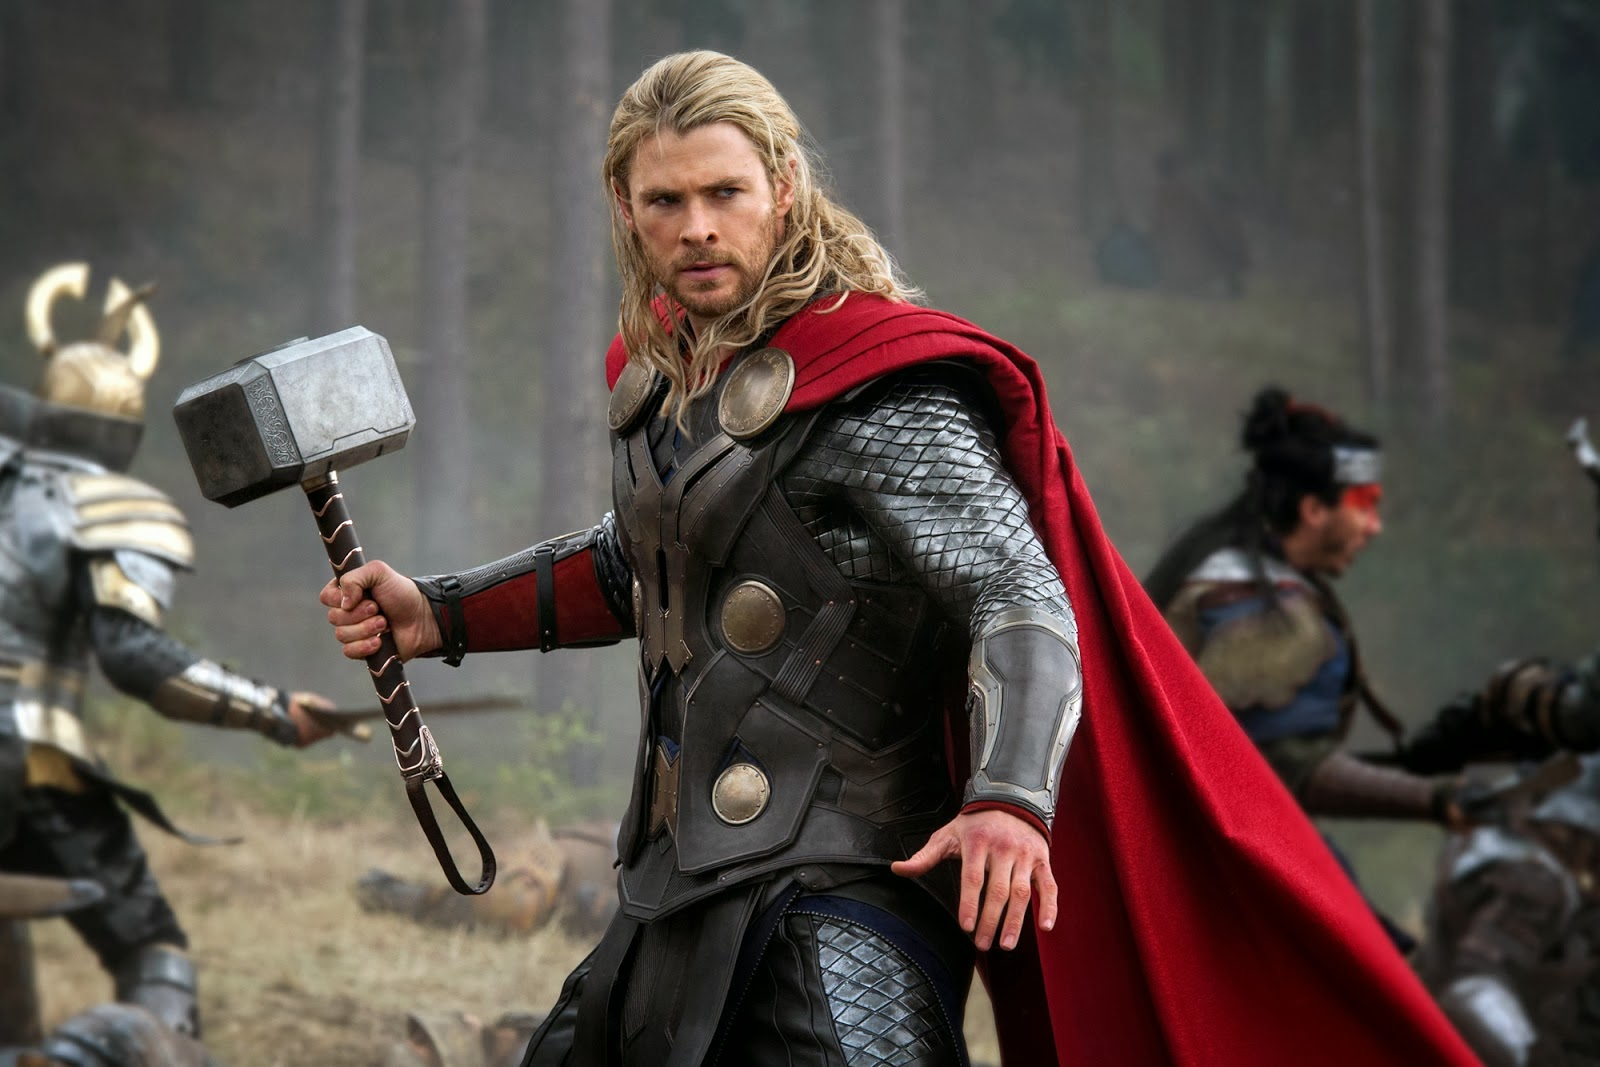 Thor+2+hd+movie-+the+dark+world-full+hd+thor+2+movie+%287%29.jpg